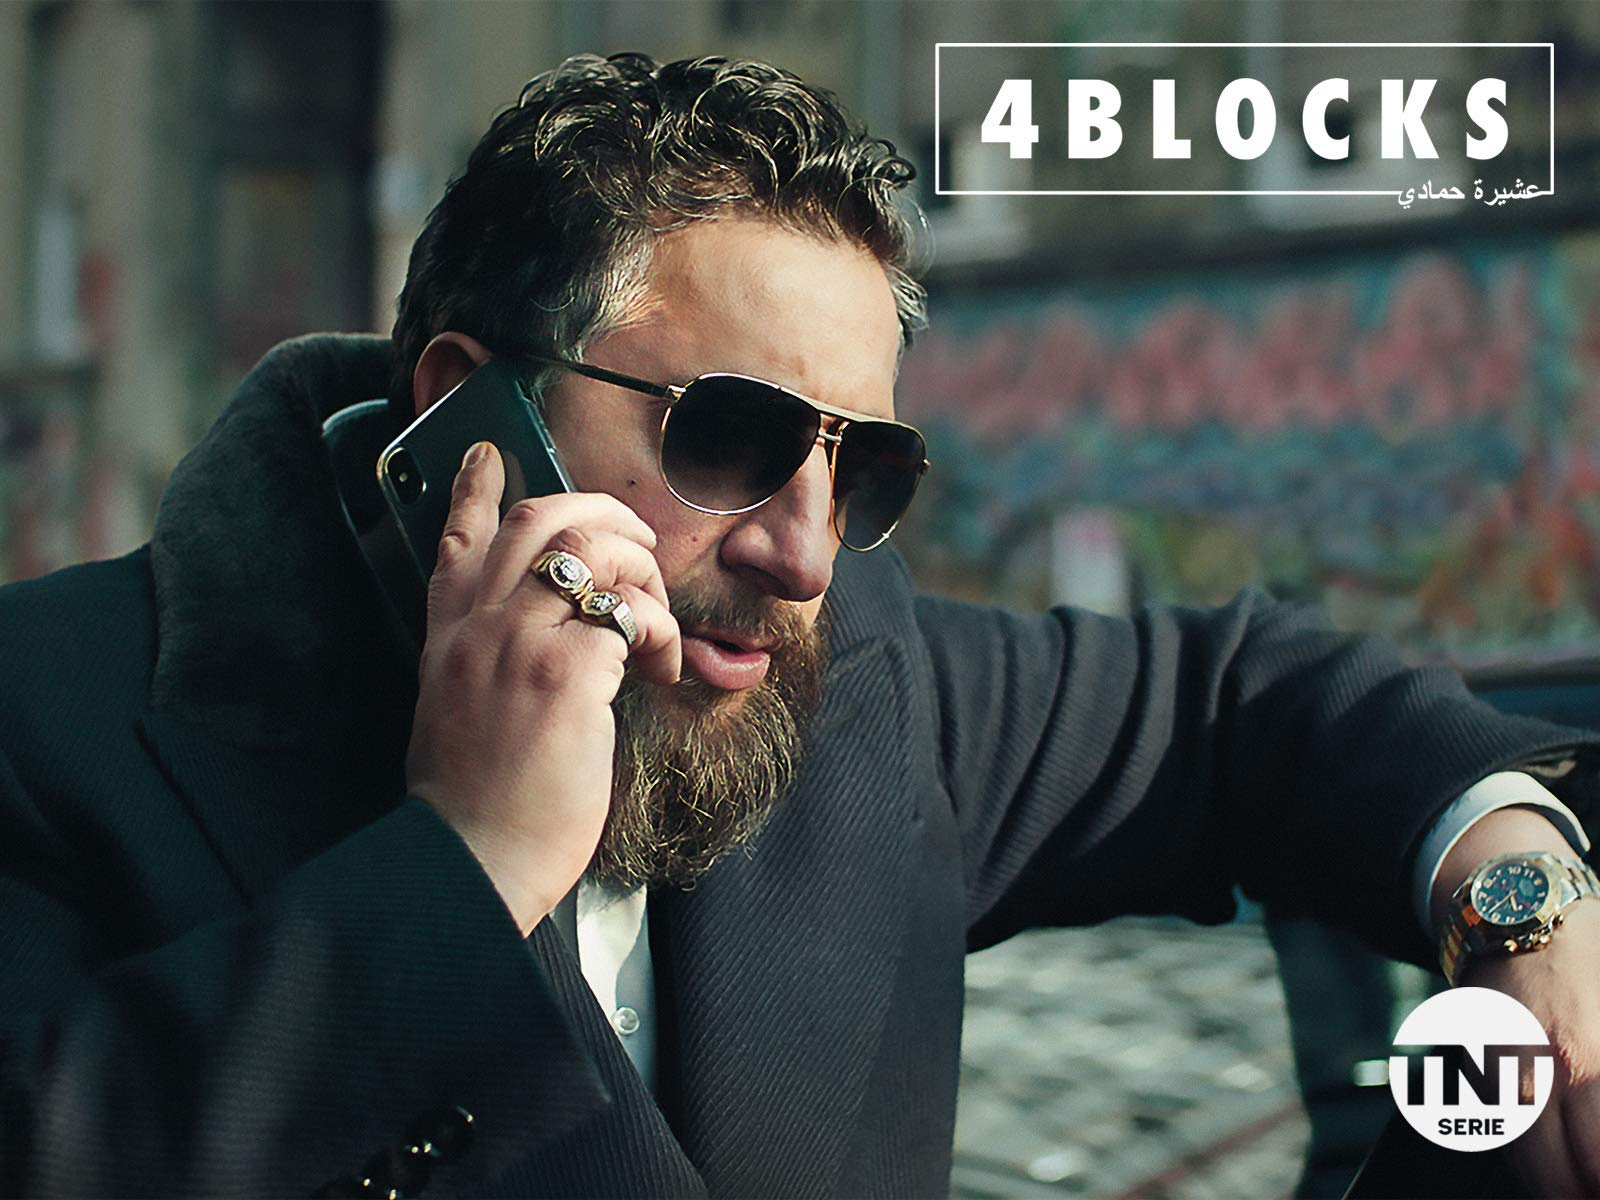 Amazonde 4 Blocks Staffel 2 Ansehen Prime Video